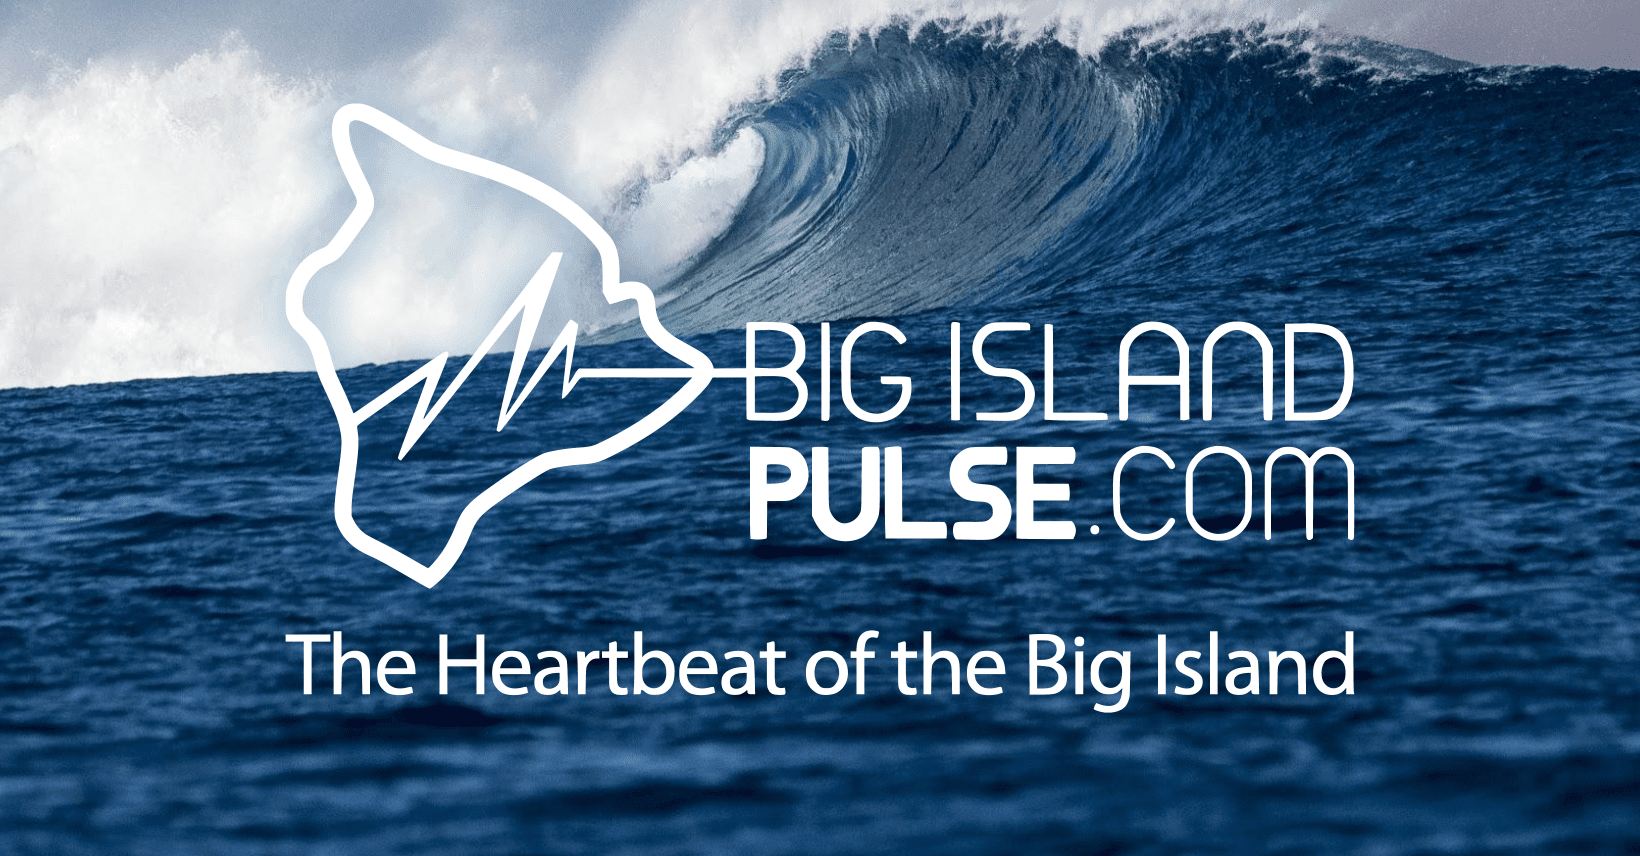 Big Island Hawaii Pulse logo on wave